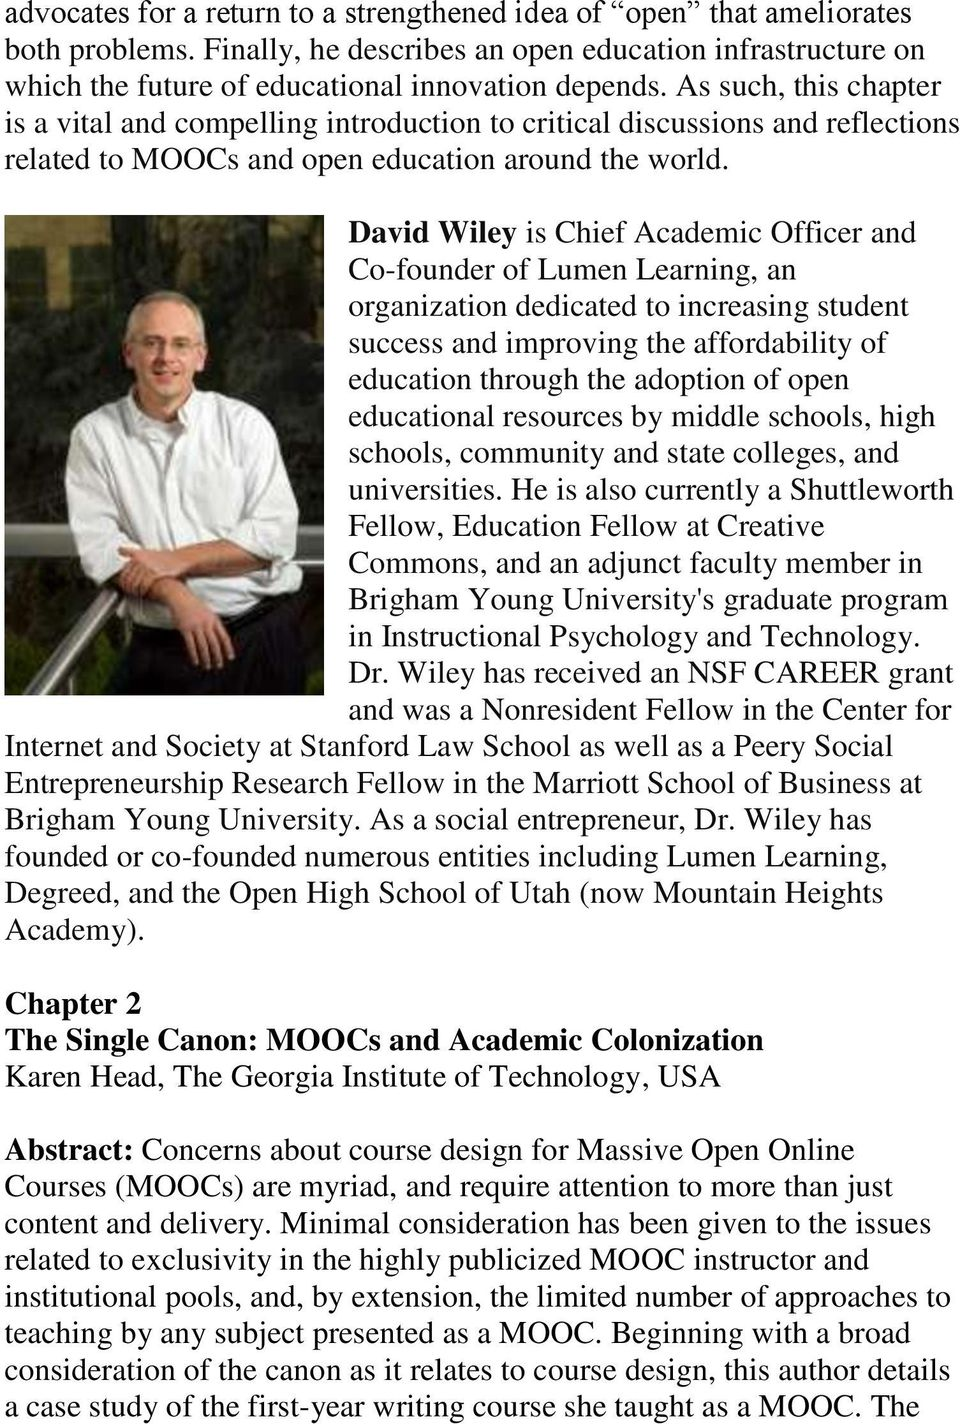 David Wiley is Chief Academic Officer and Co-founder of Lumen Learning, an organization dedicated to increasing student success and improving the affordability of education through the adoption of